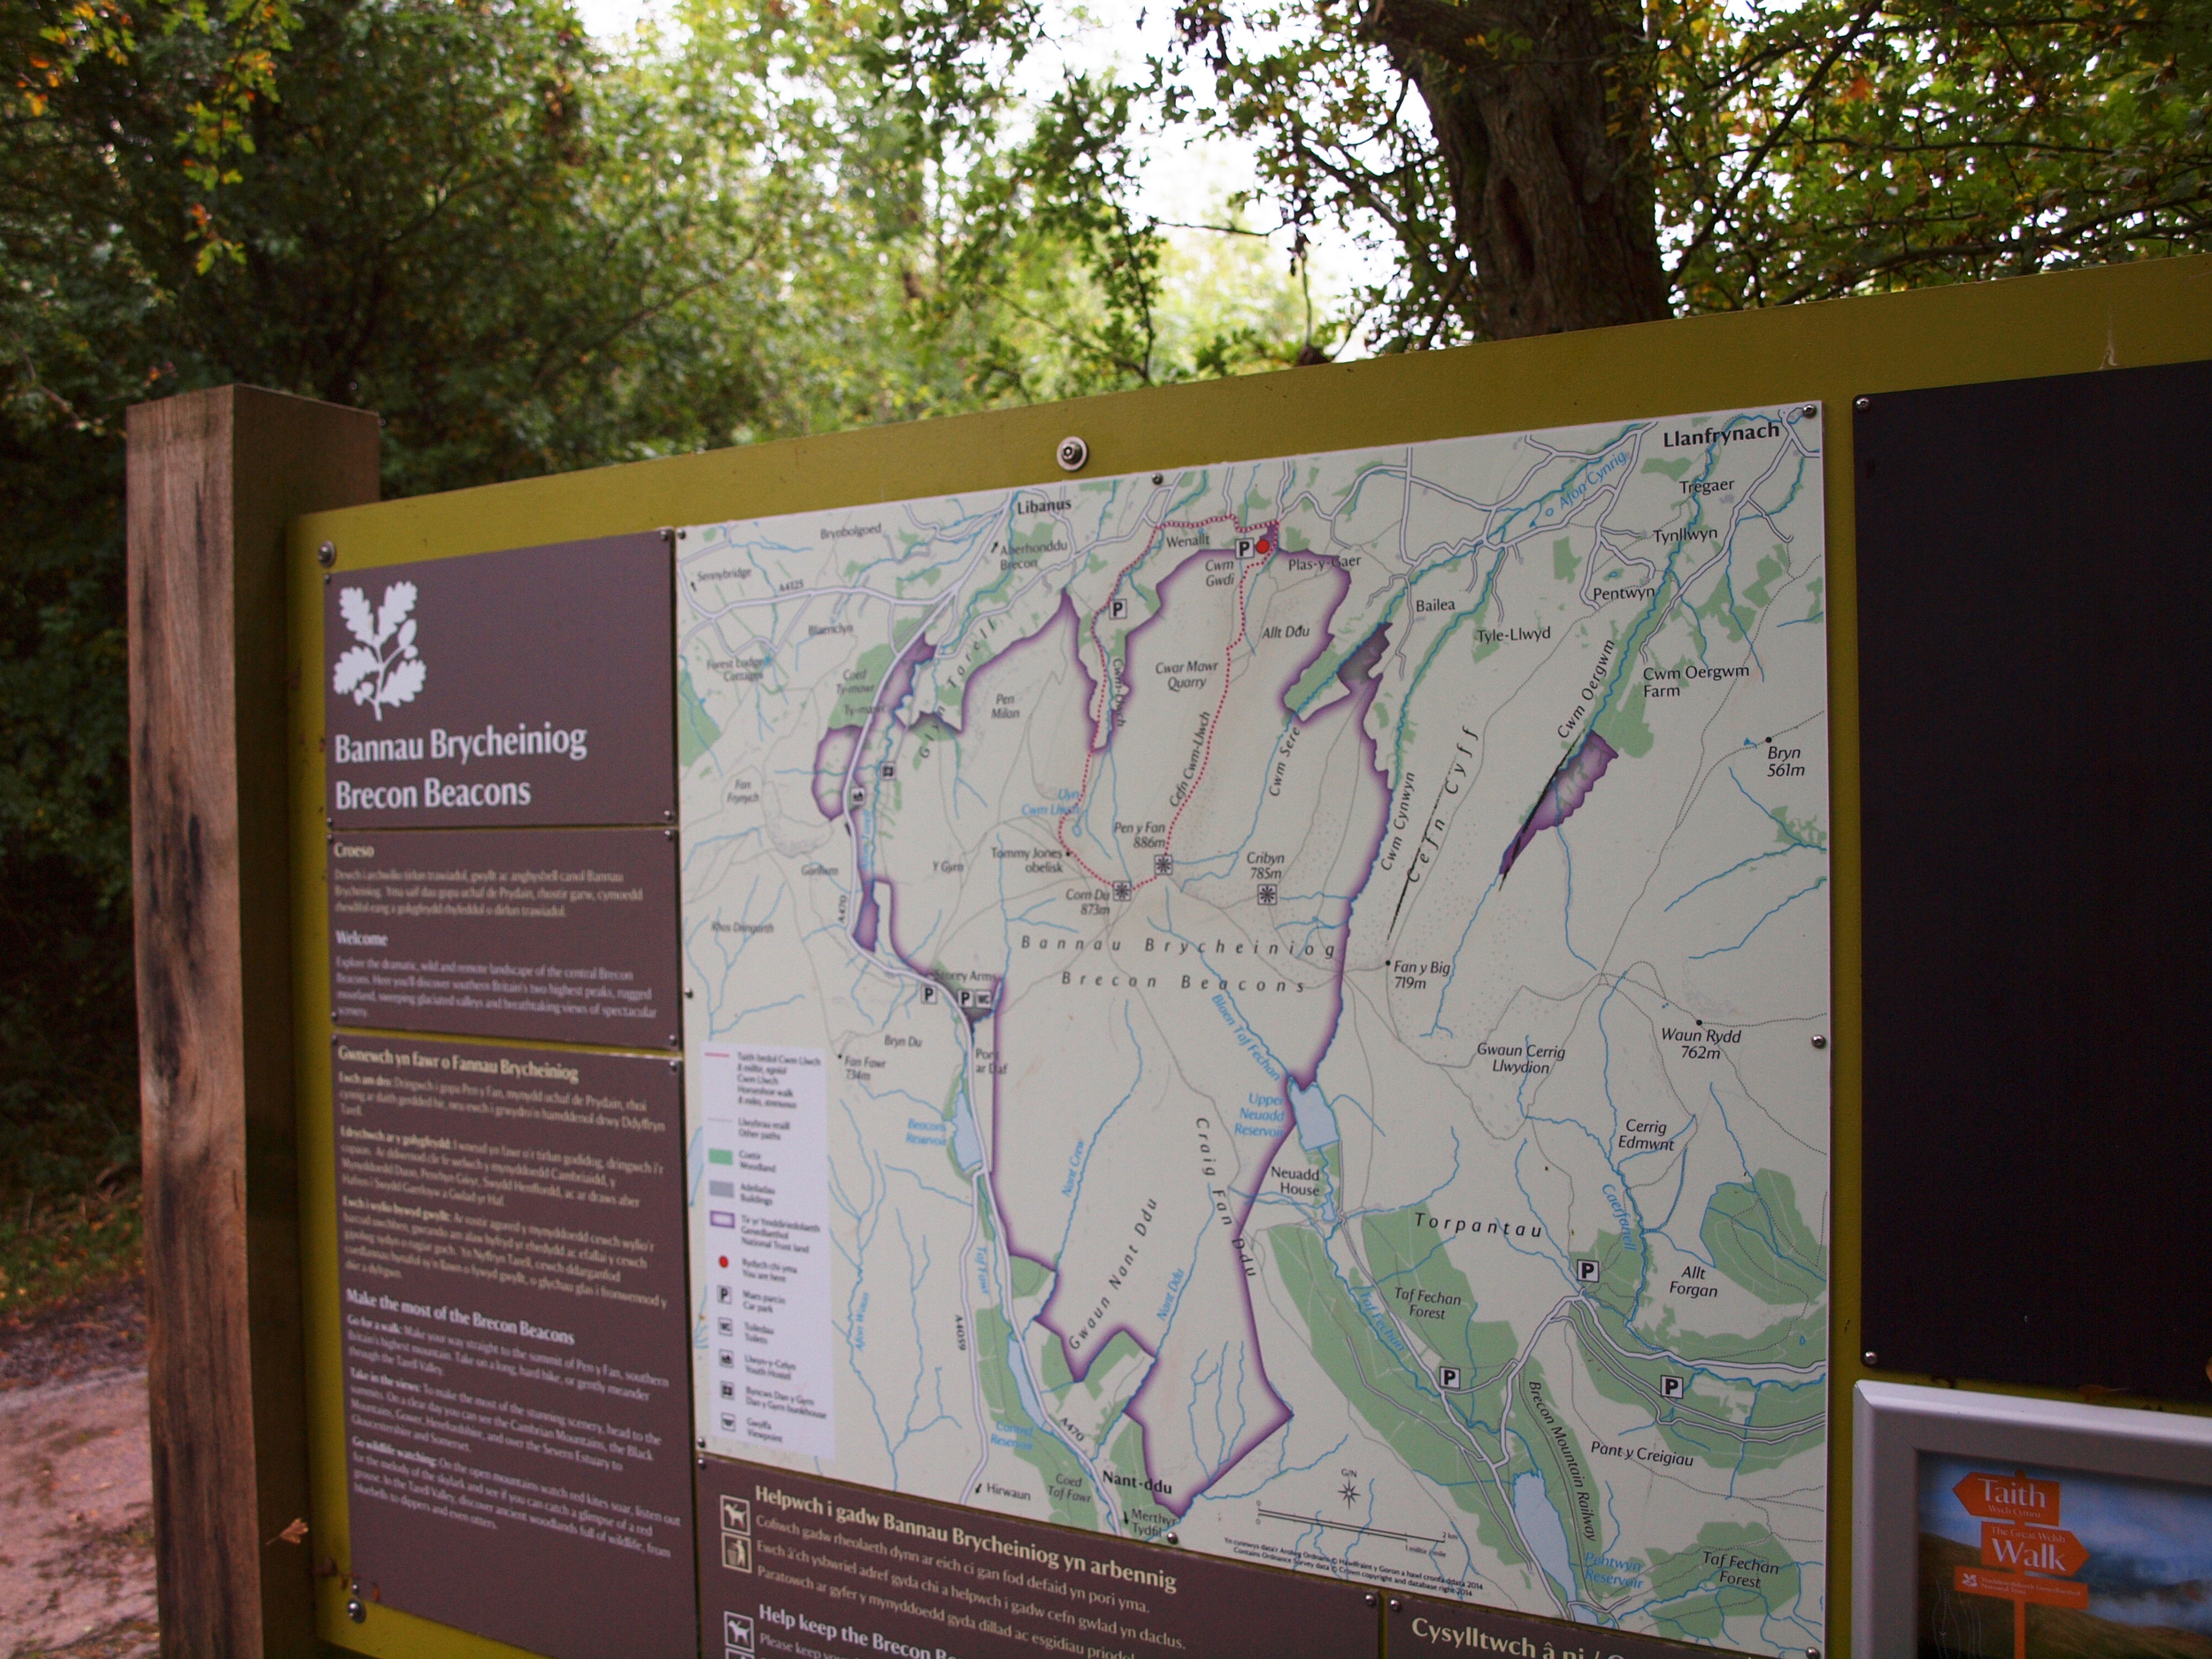 Our hiking trail illustrated in red